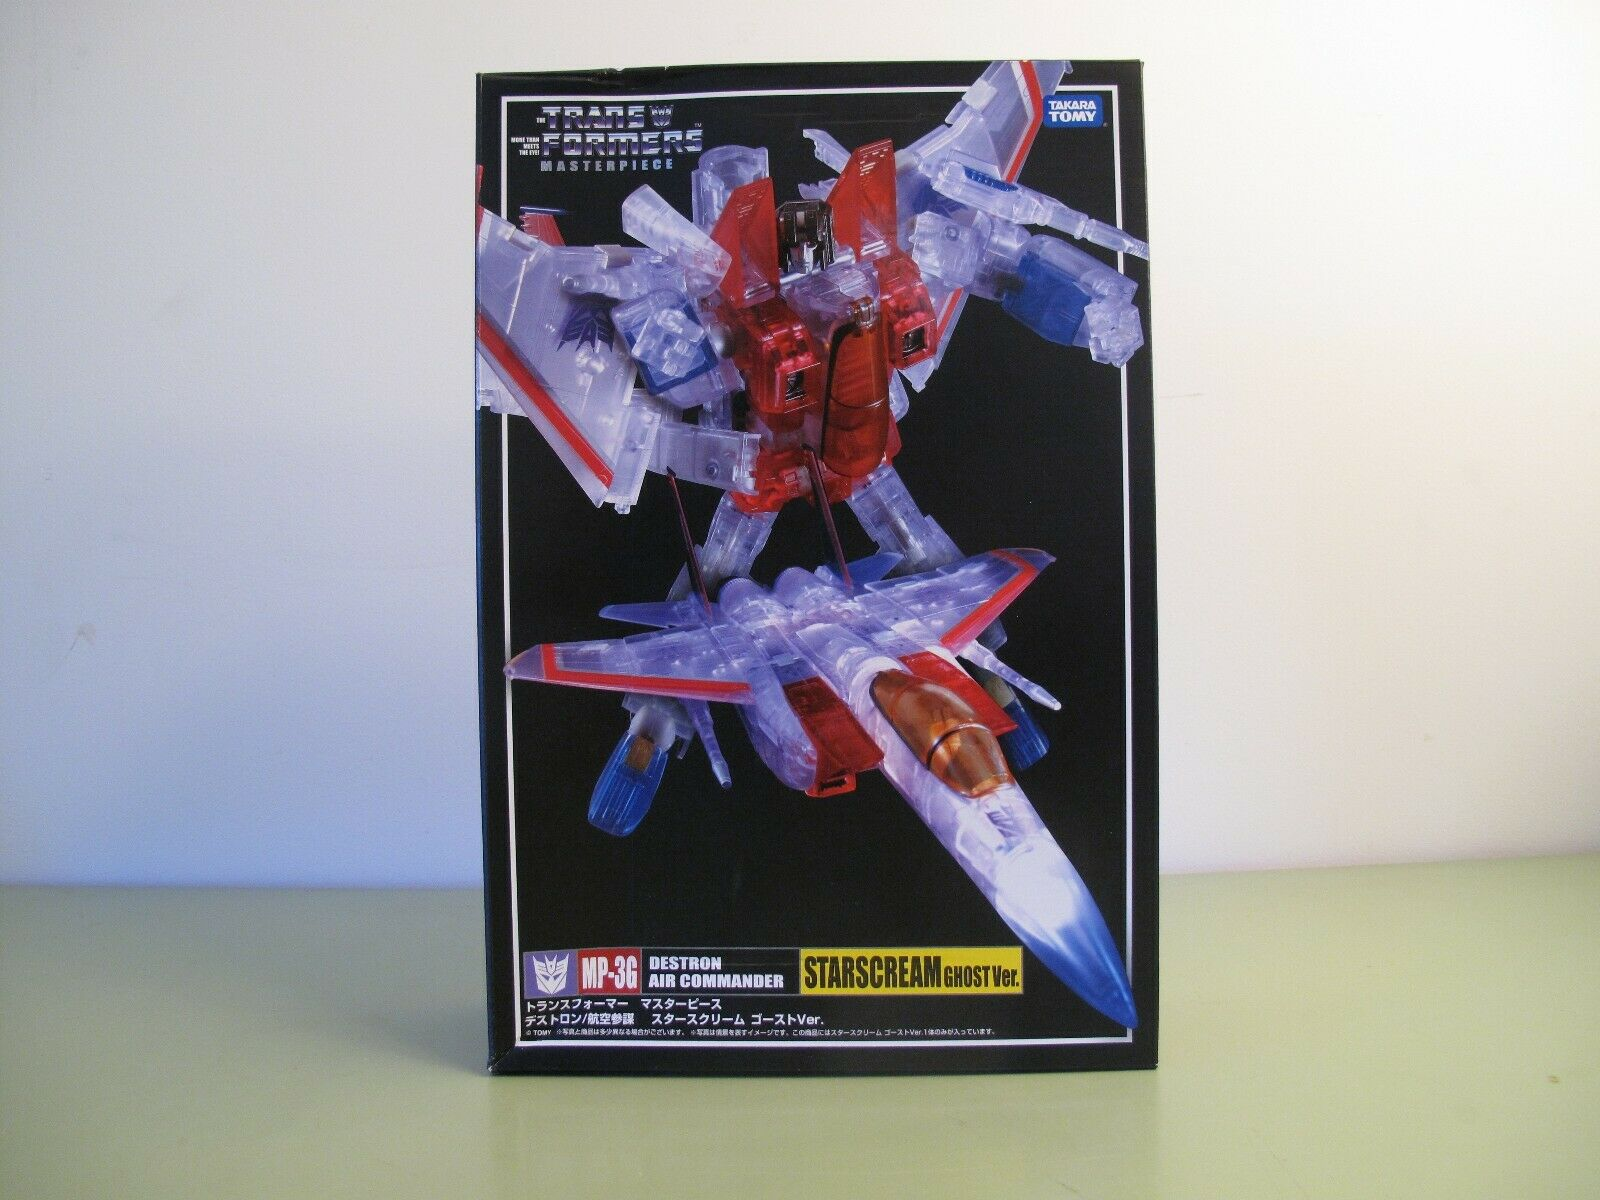 Takara Transformers Masterpiece  MP03G estrellascream Ghost Robots azione cifra